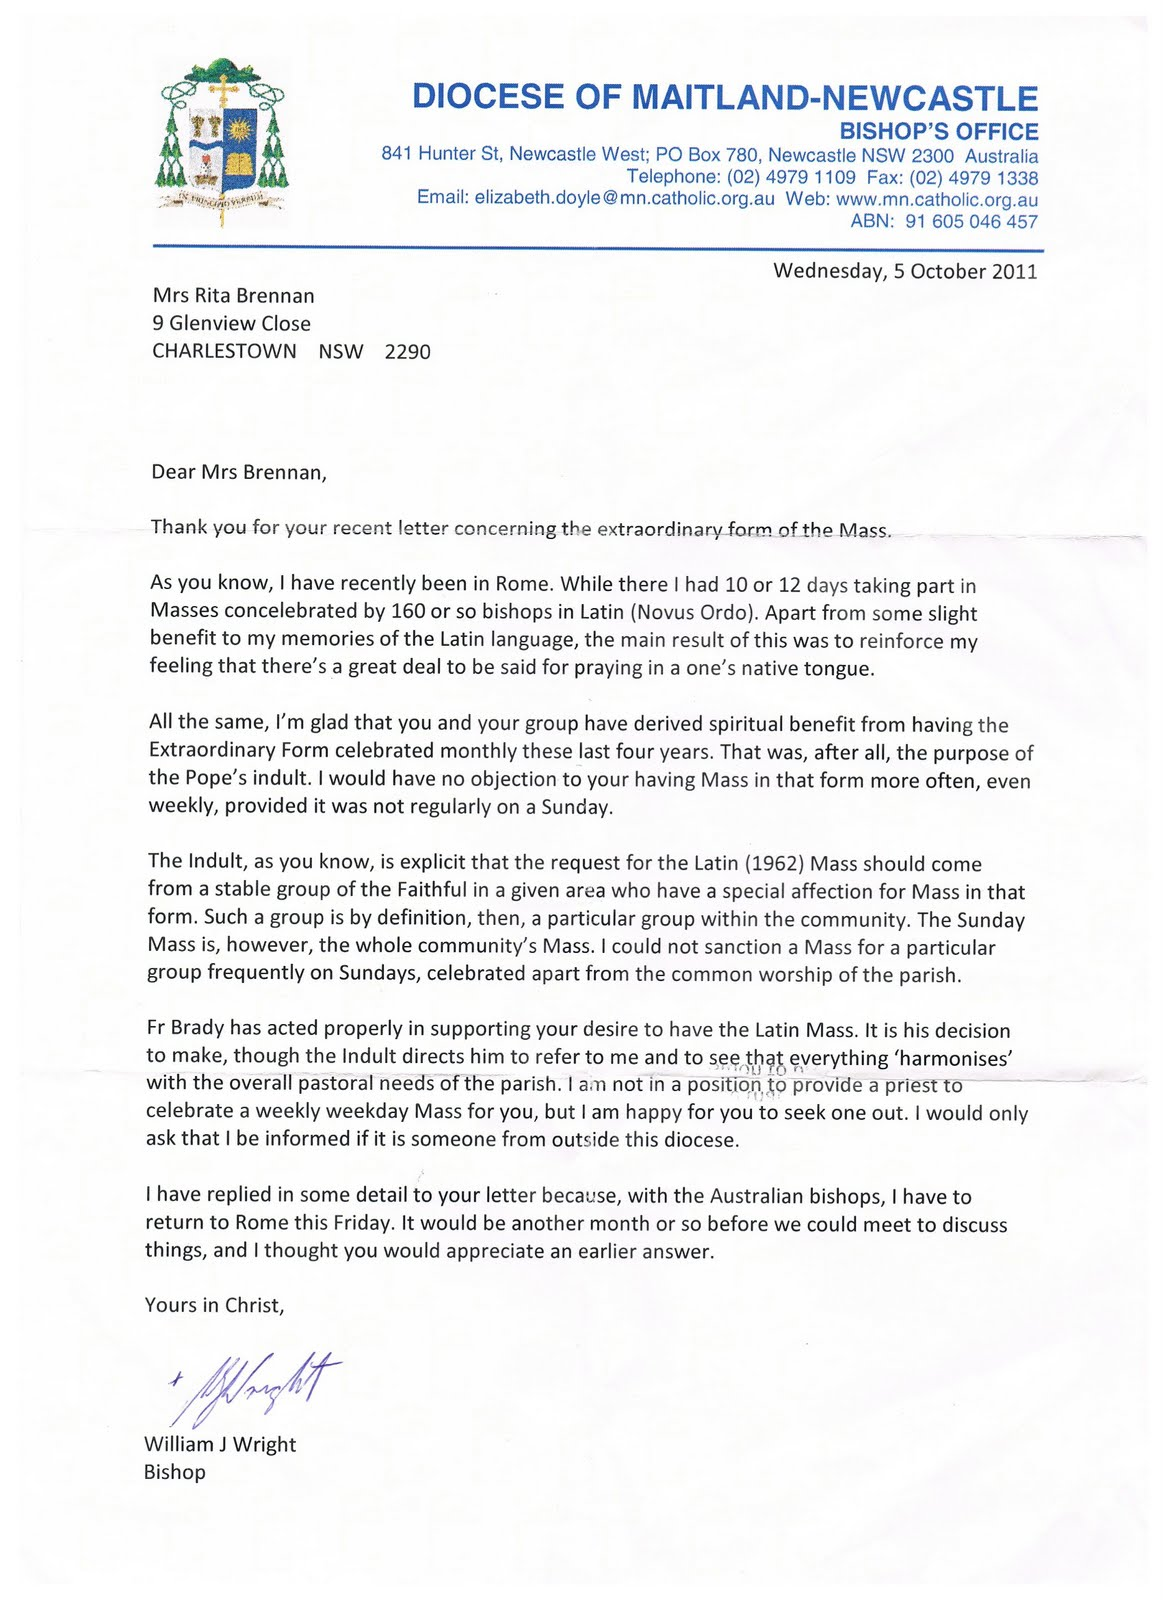 How To Write A Business Letter In French Images Letter Examples